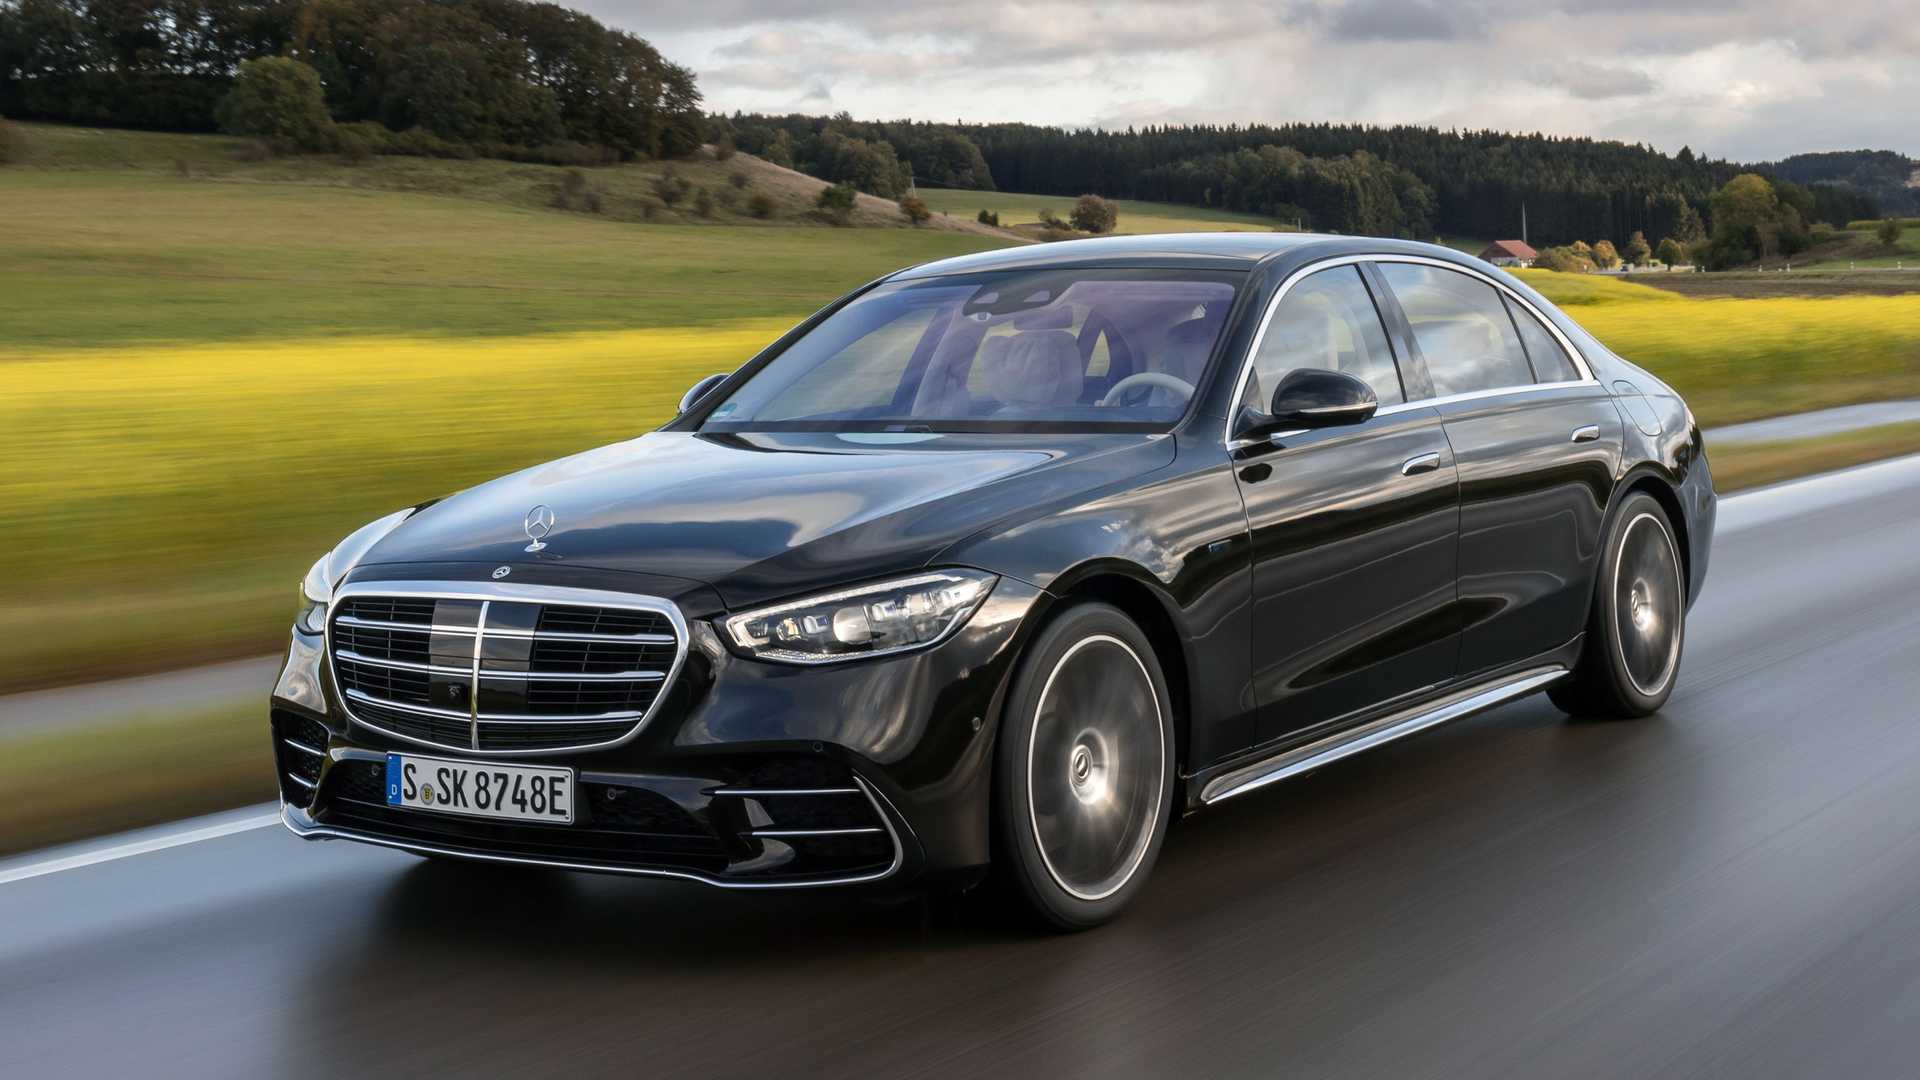 When Mercedes introduced its new S-Class, it mentioned a rechargeable S 580 e version, but it has not available for ordering in Europe until yesterday.